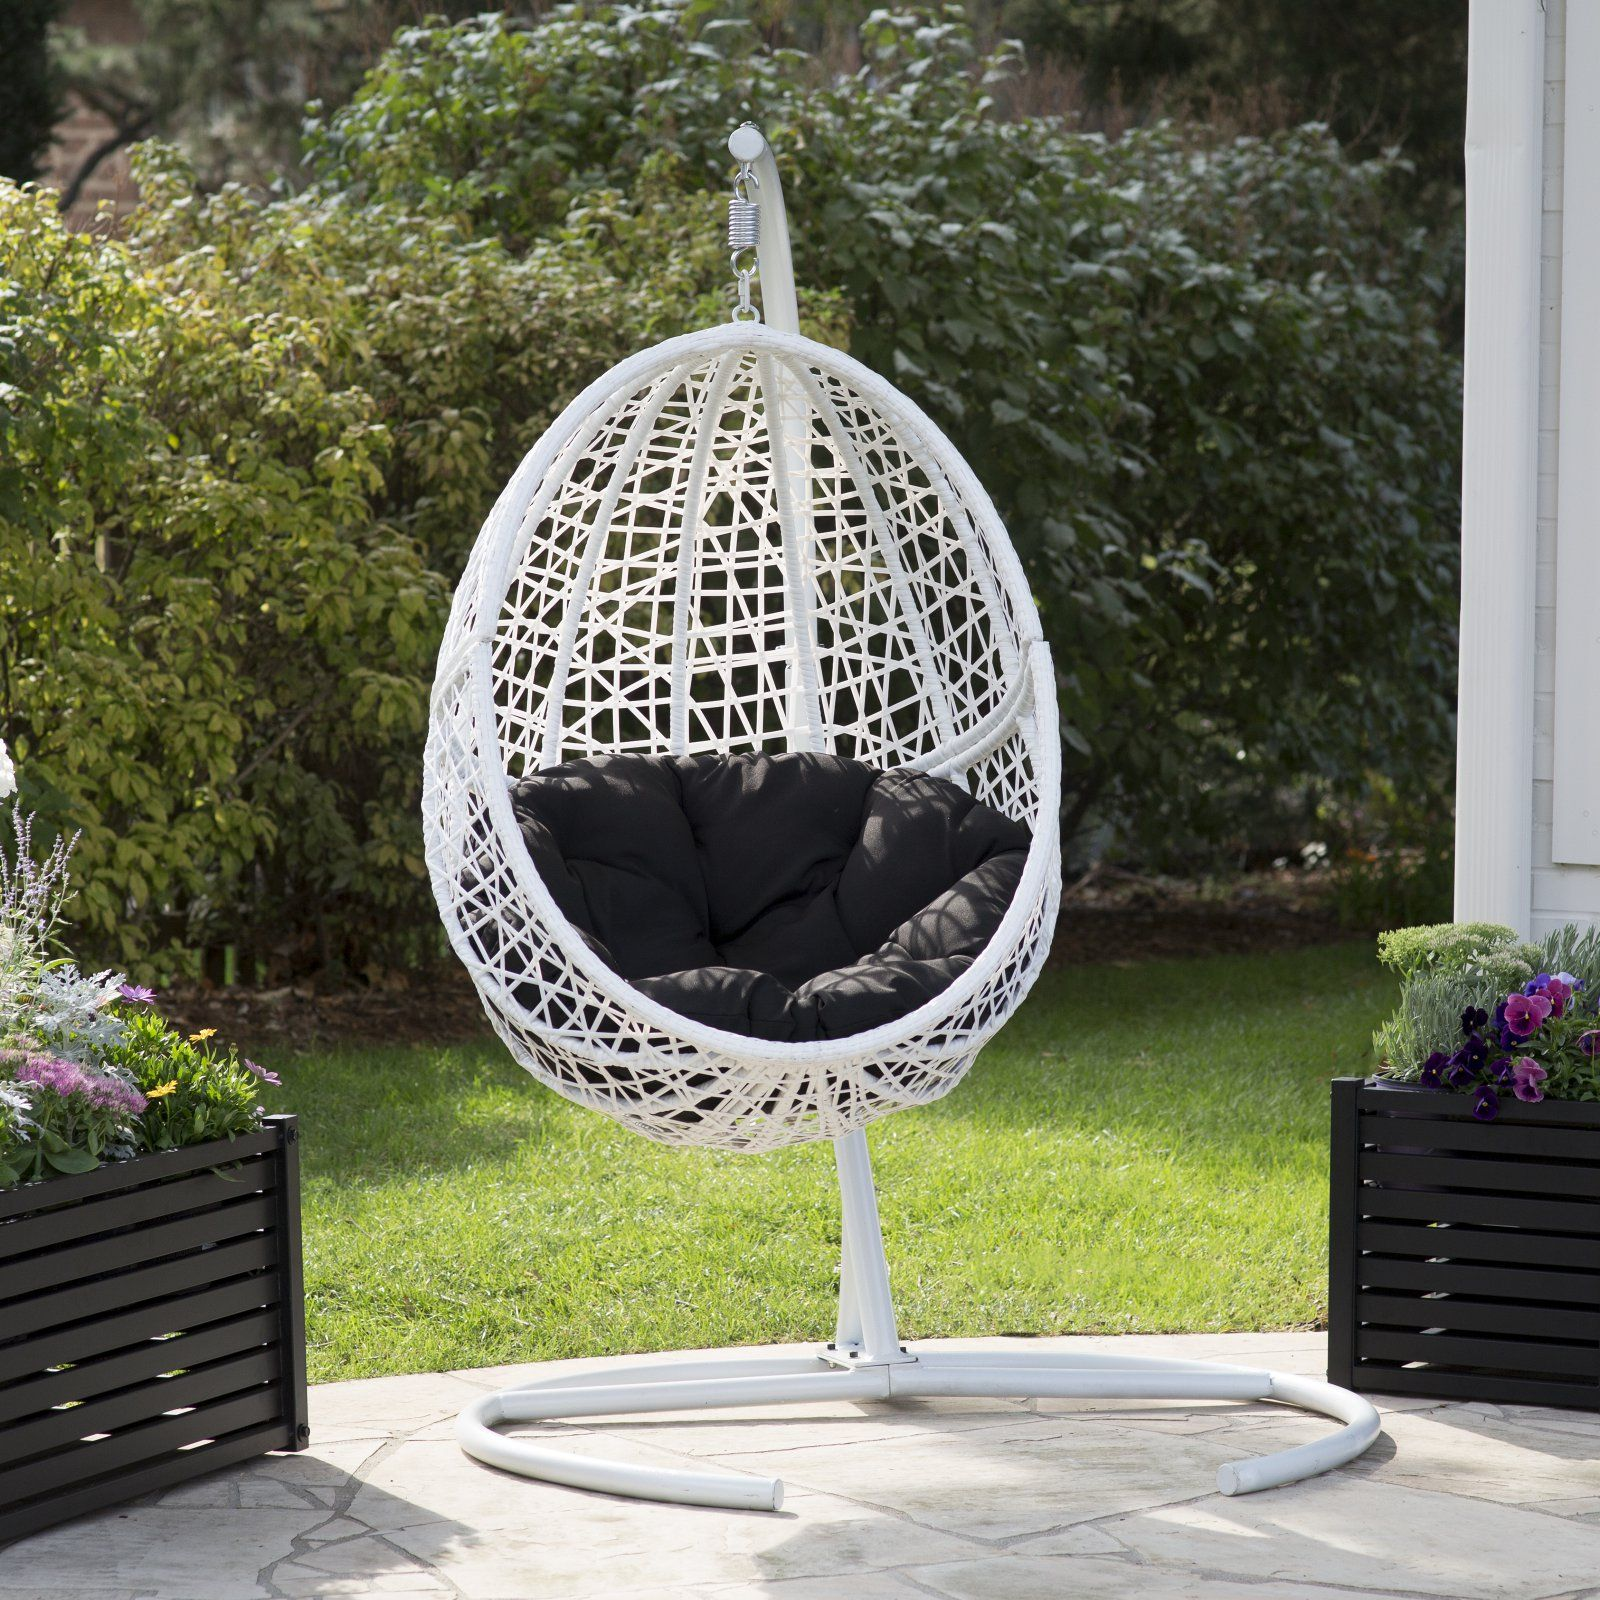 Sensational Outdoor Belham Living Resin Wicker Blanca Hanging Egg Chair Home Interior And Landscaping Ologienasavecom